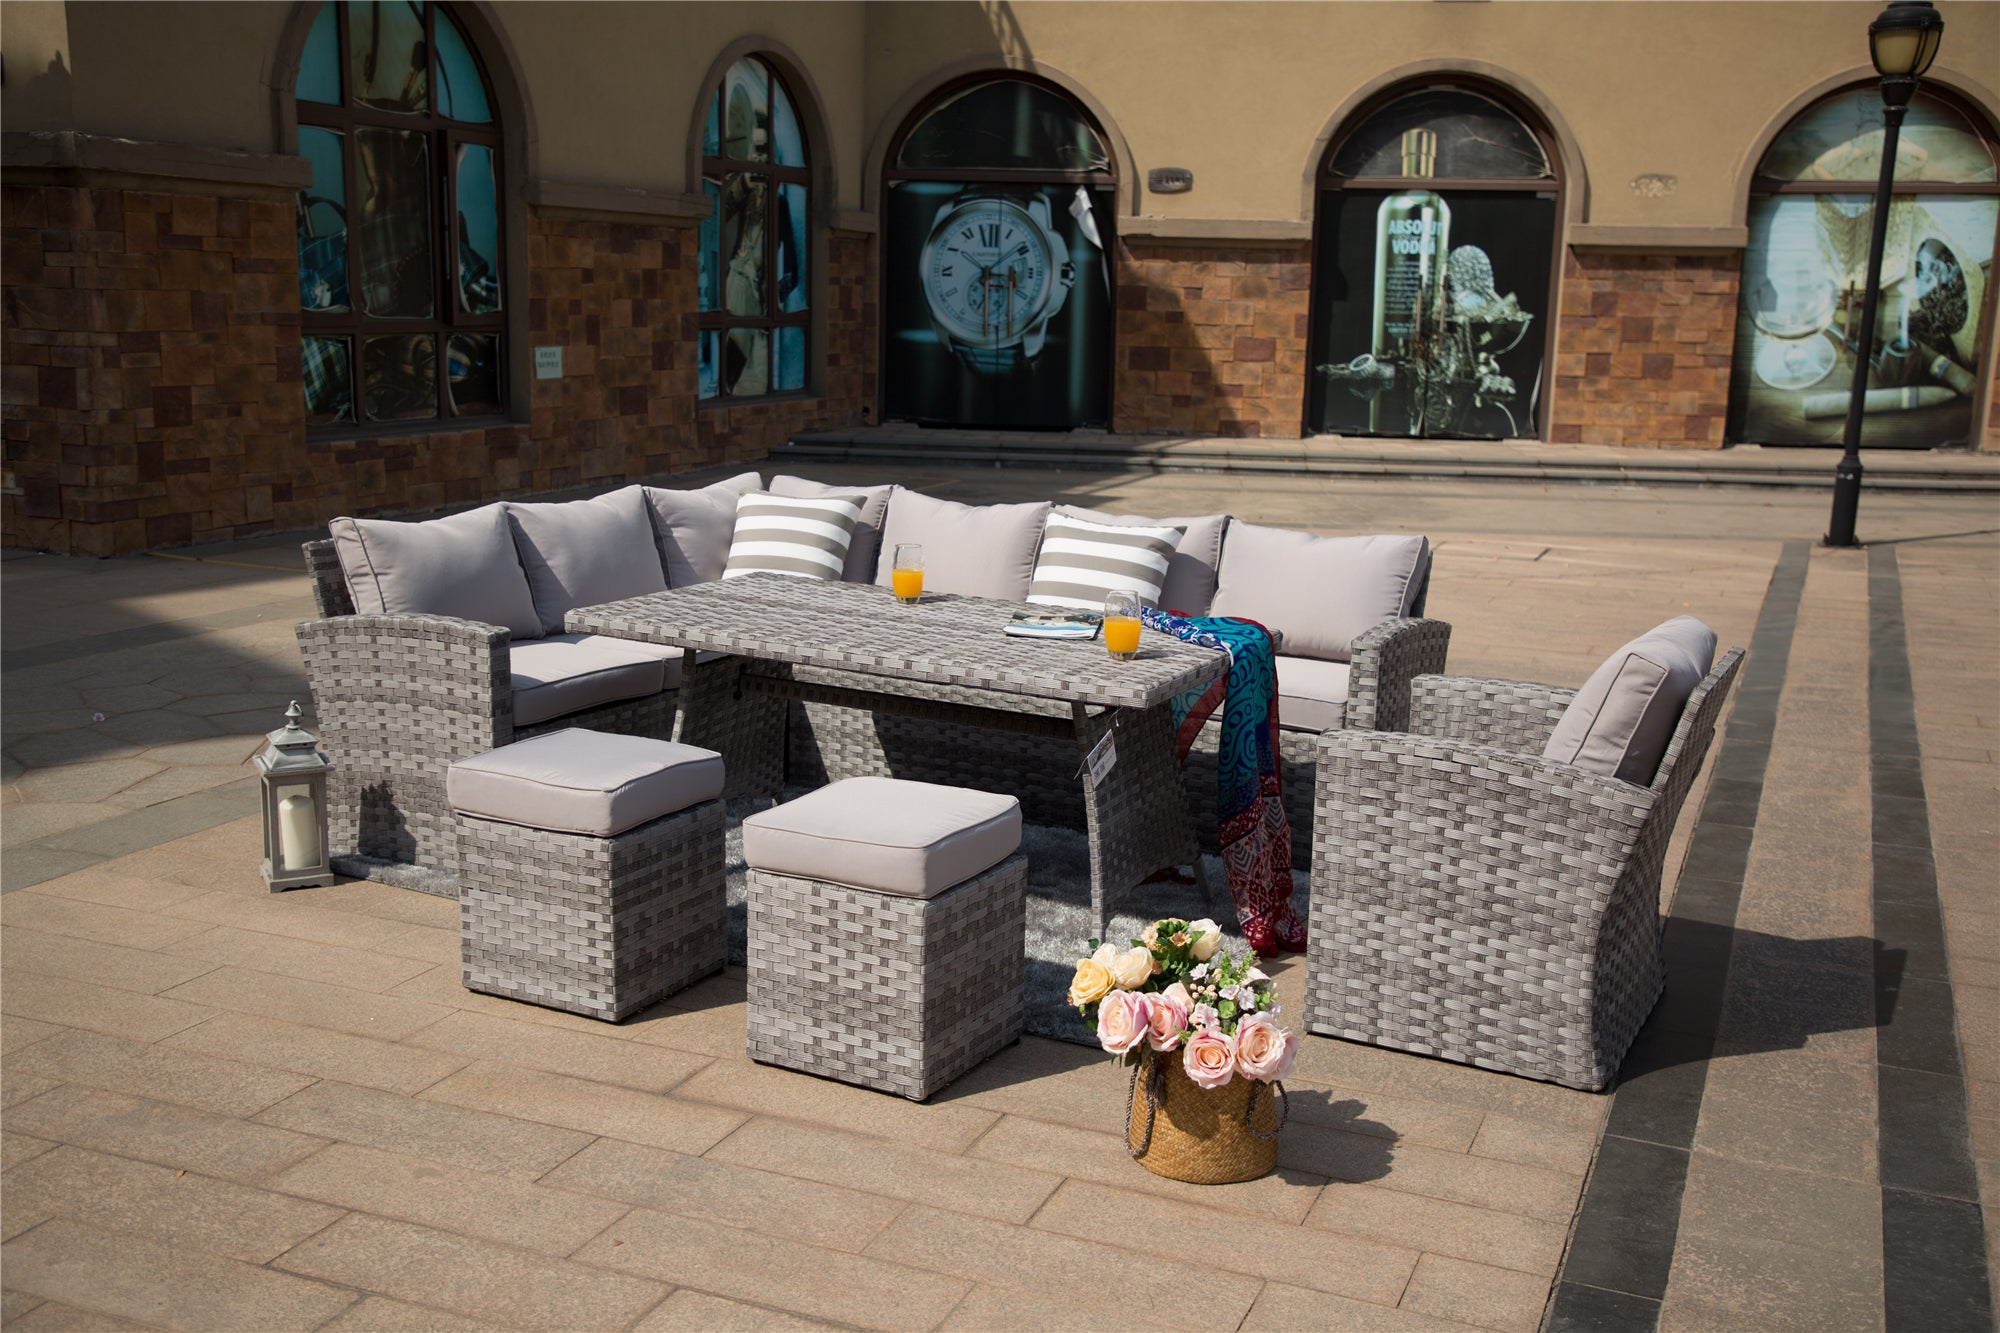 Danbury Outdoor Rattan Sectional With Ottomans and Dining Table - 6 Pcs (PREORDER)